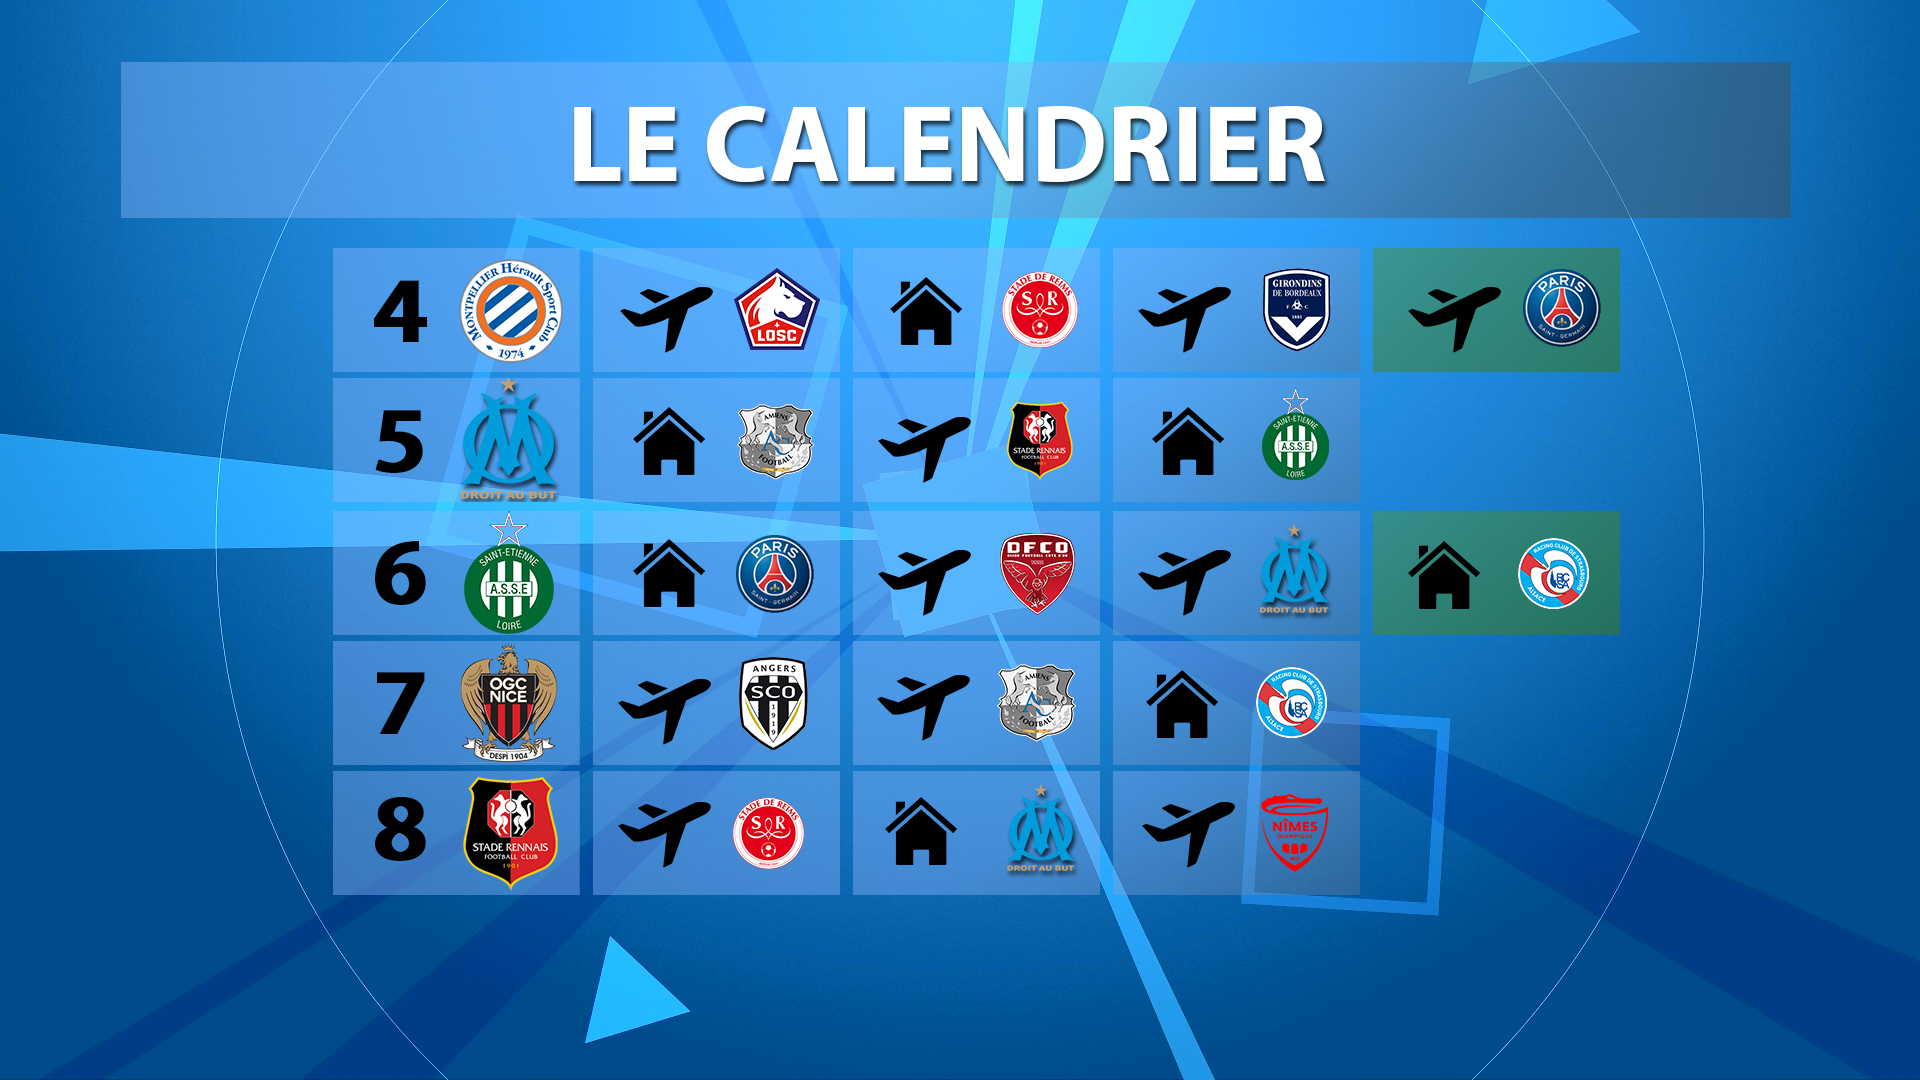 01_calendrier COMBINE.png (1.81 MB)